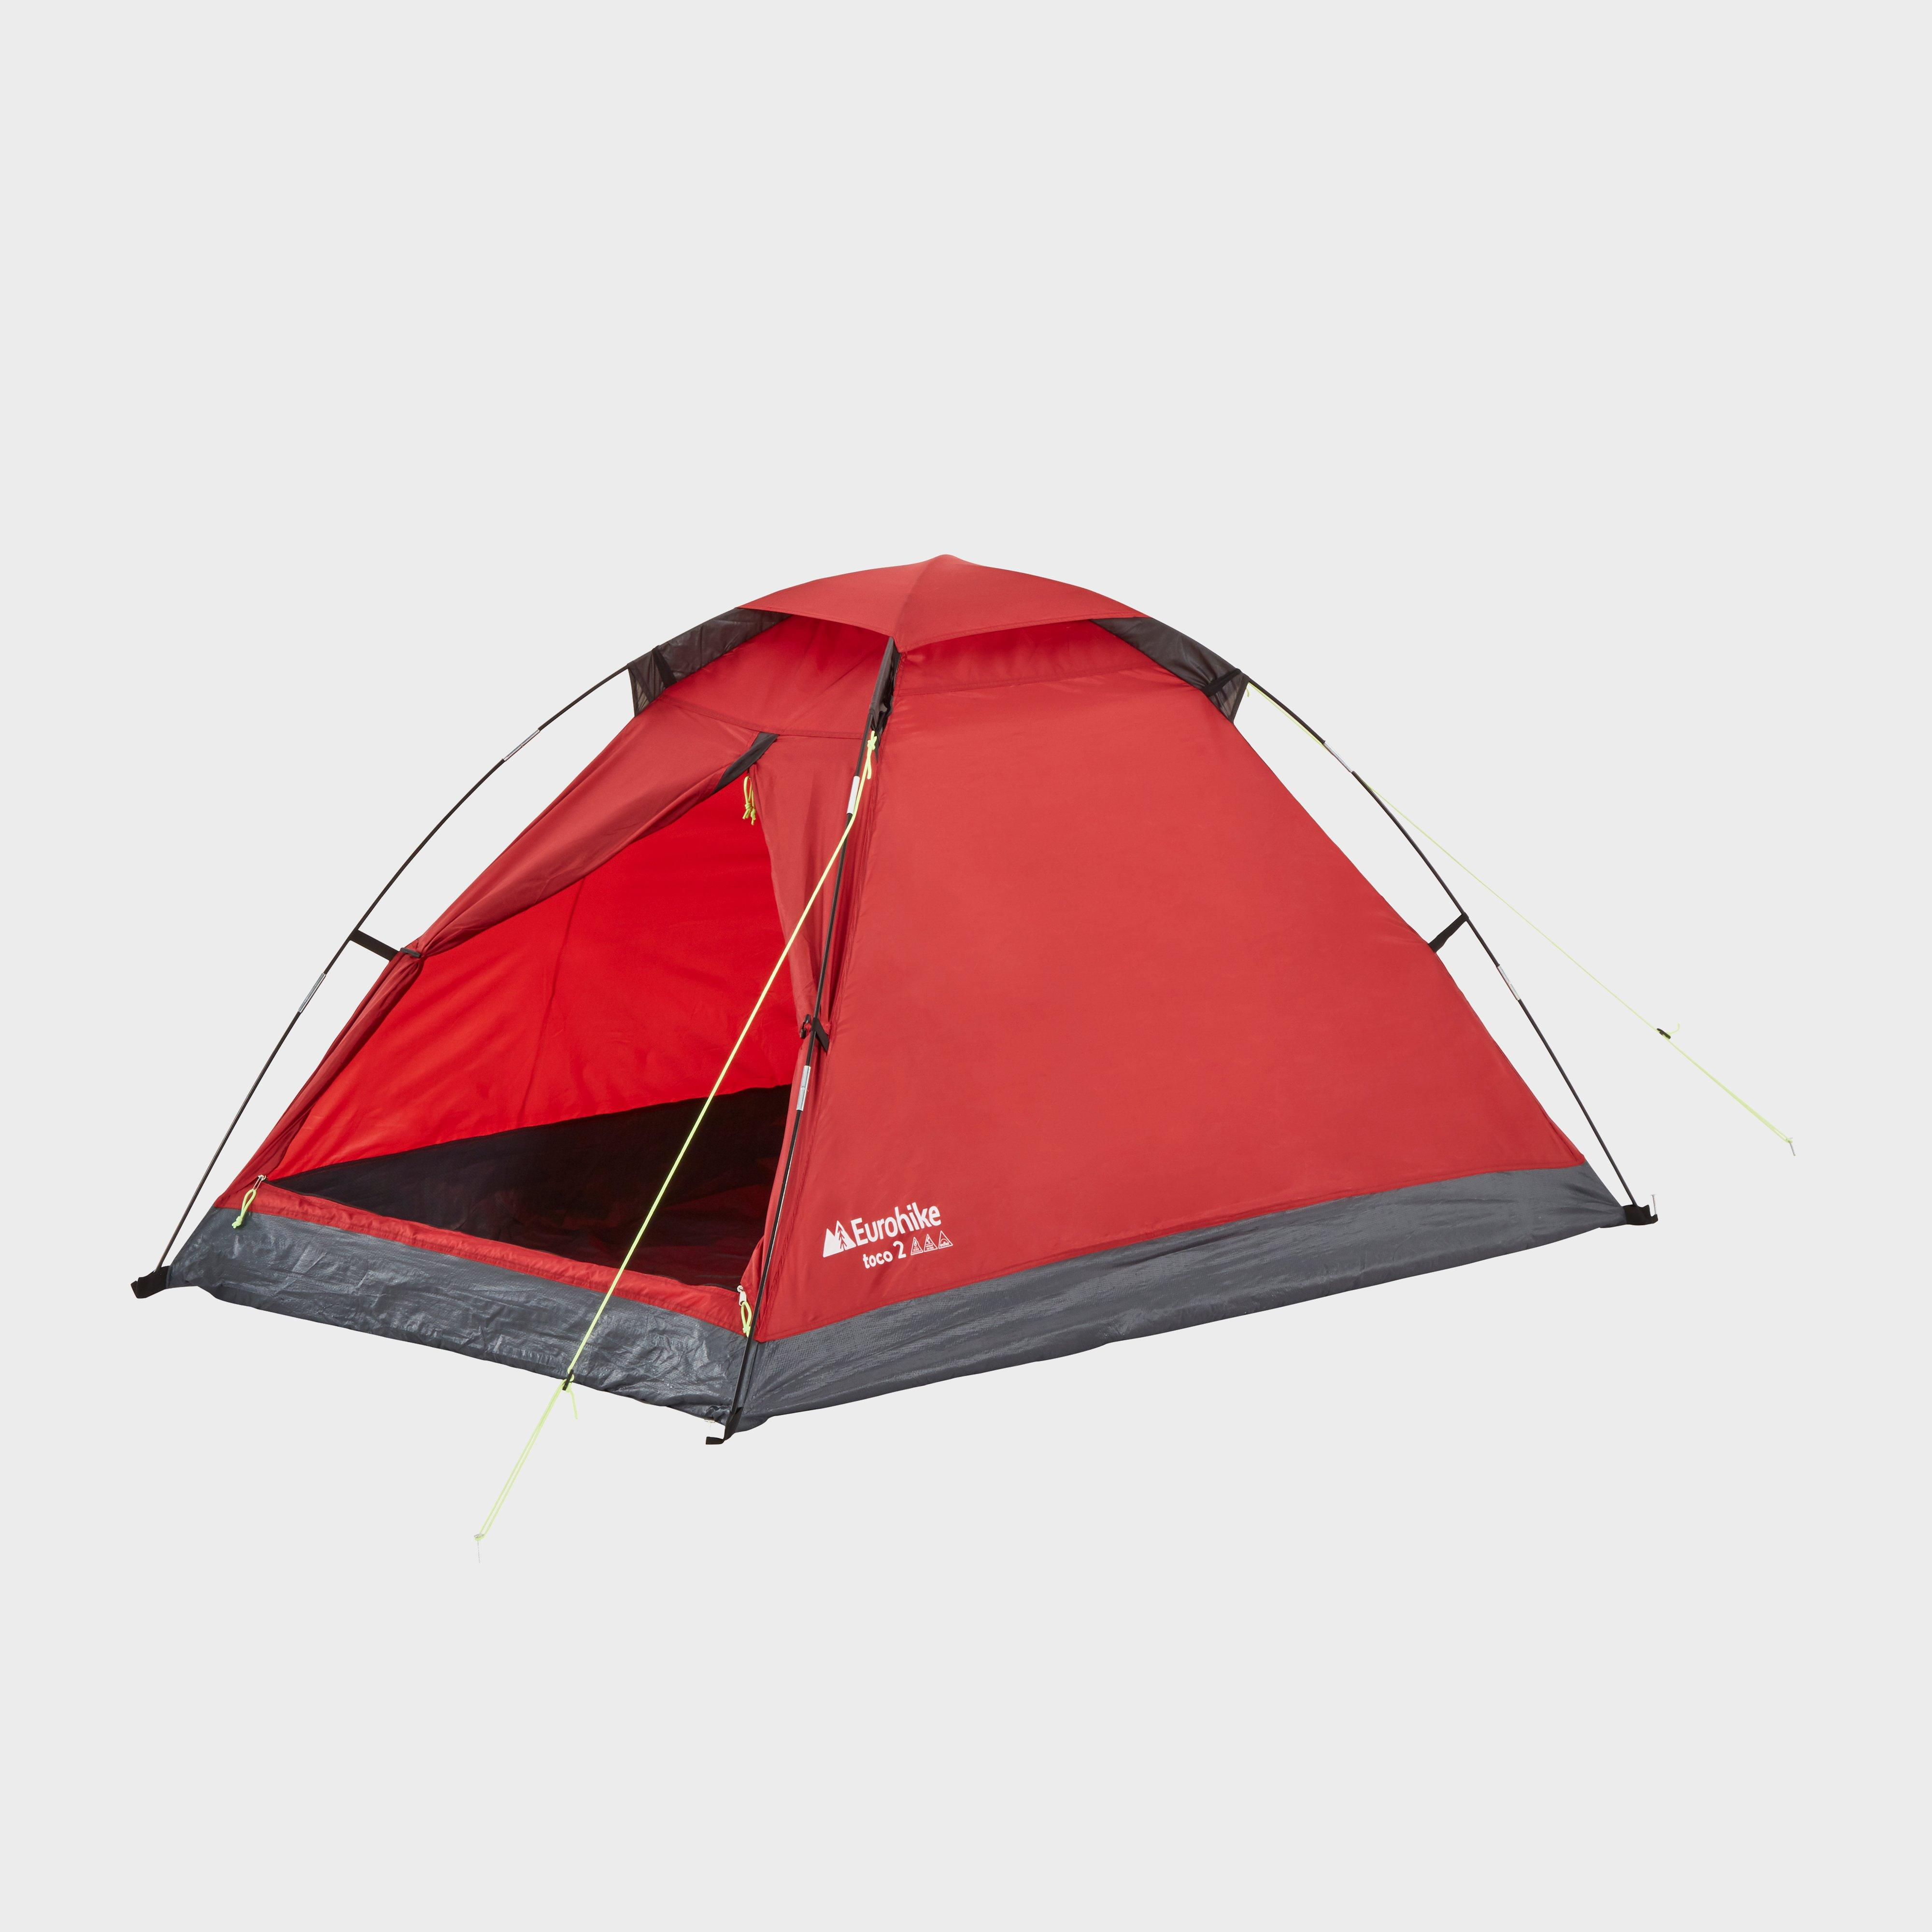 Eurohike Eh Toco 2 Tent - Red/red  Red/red